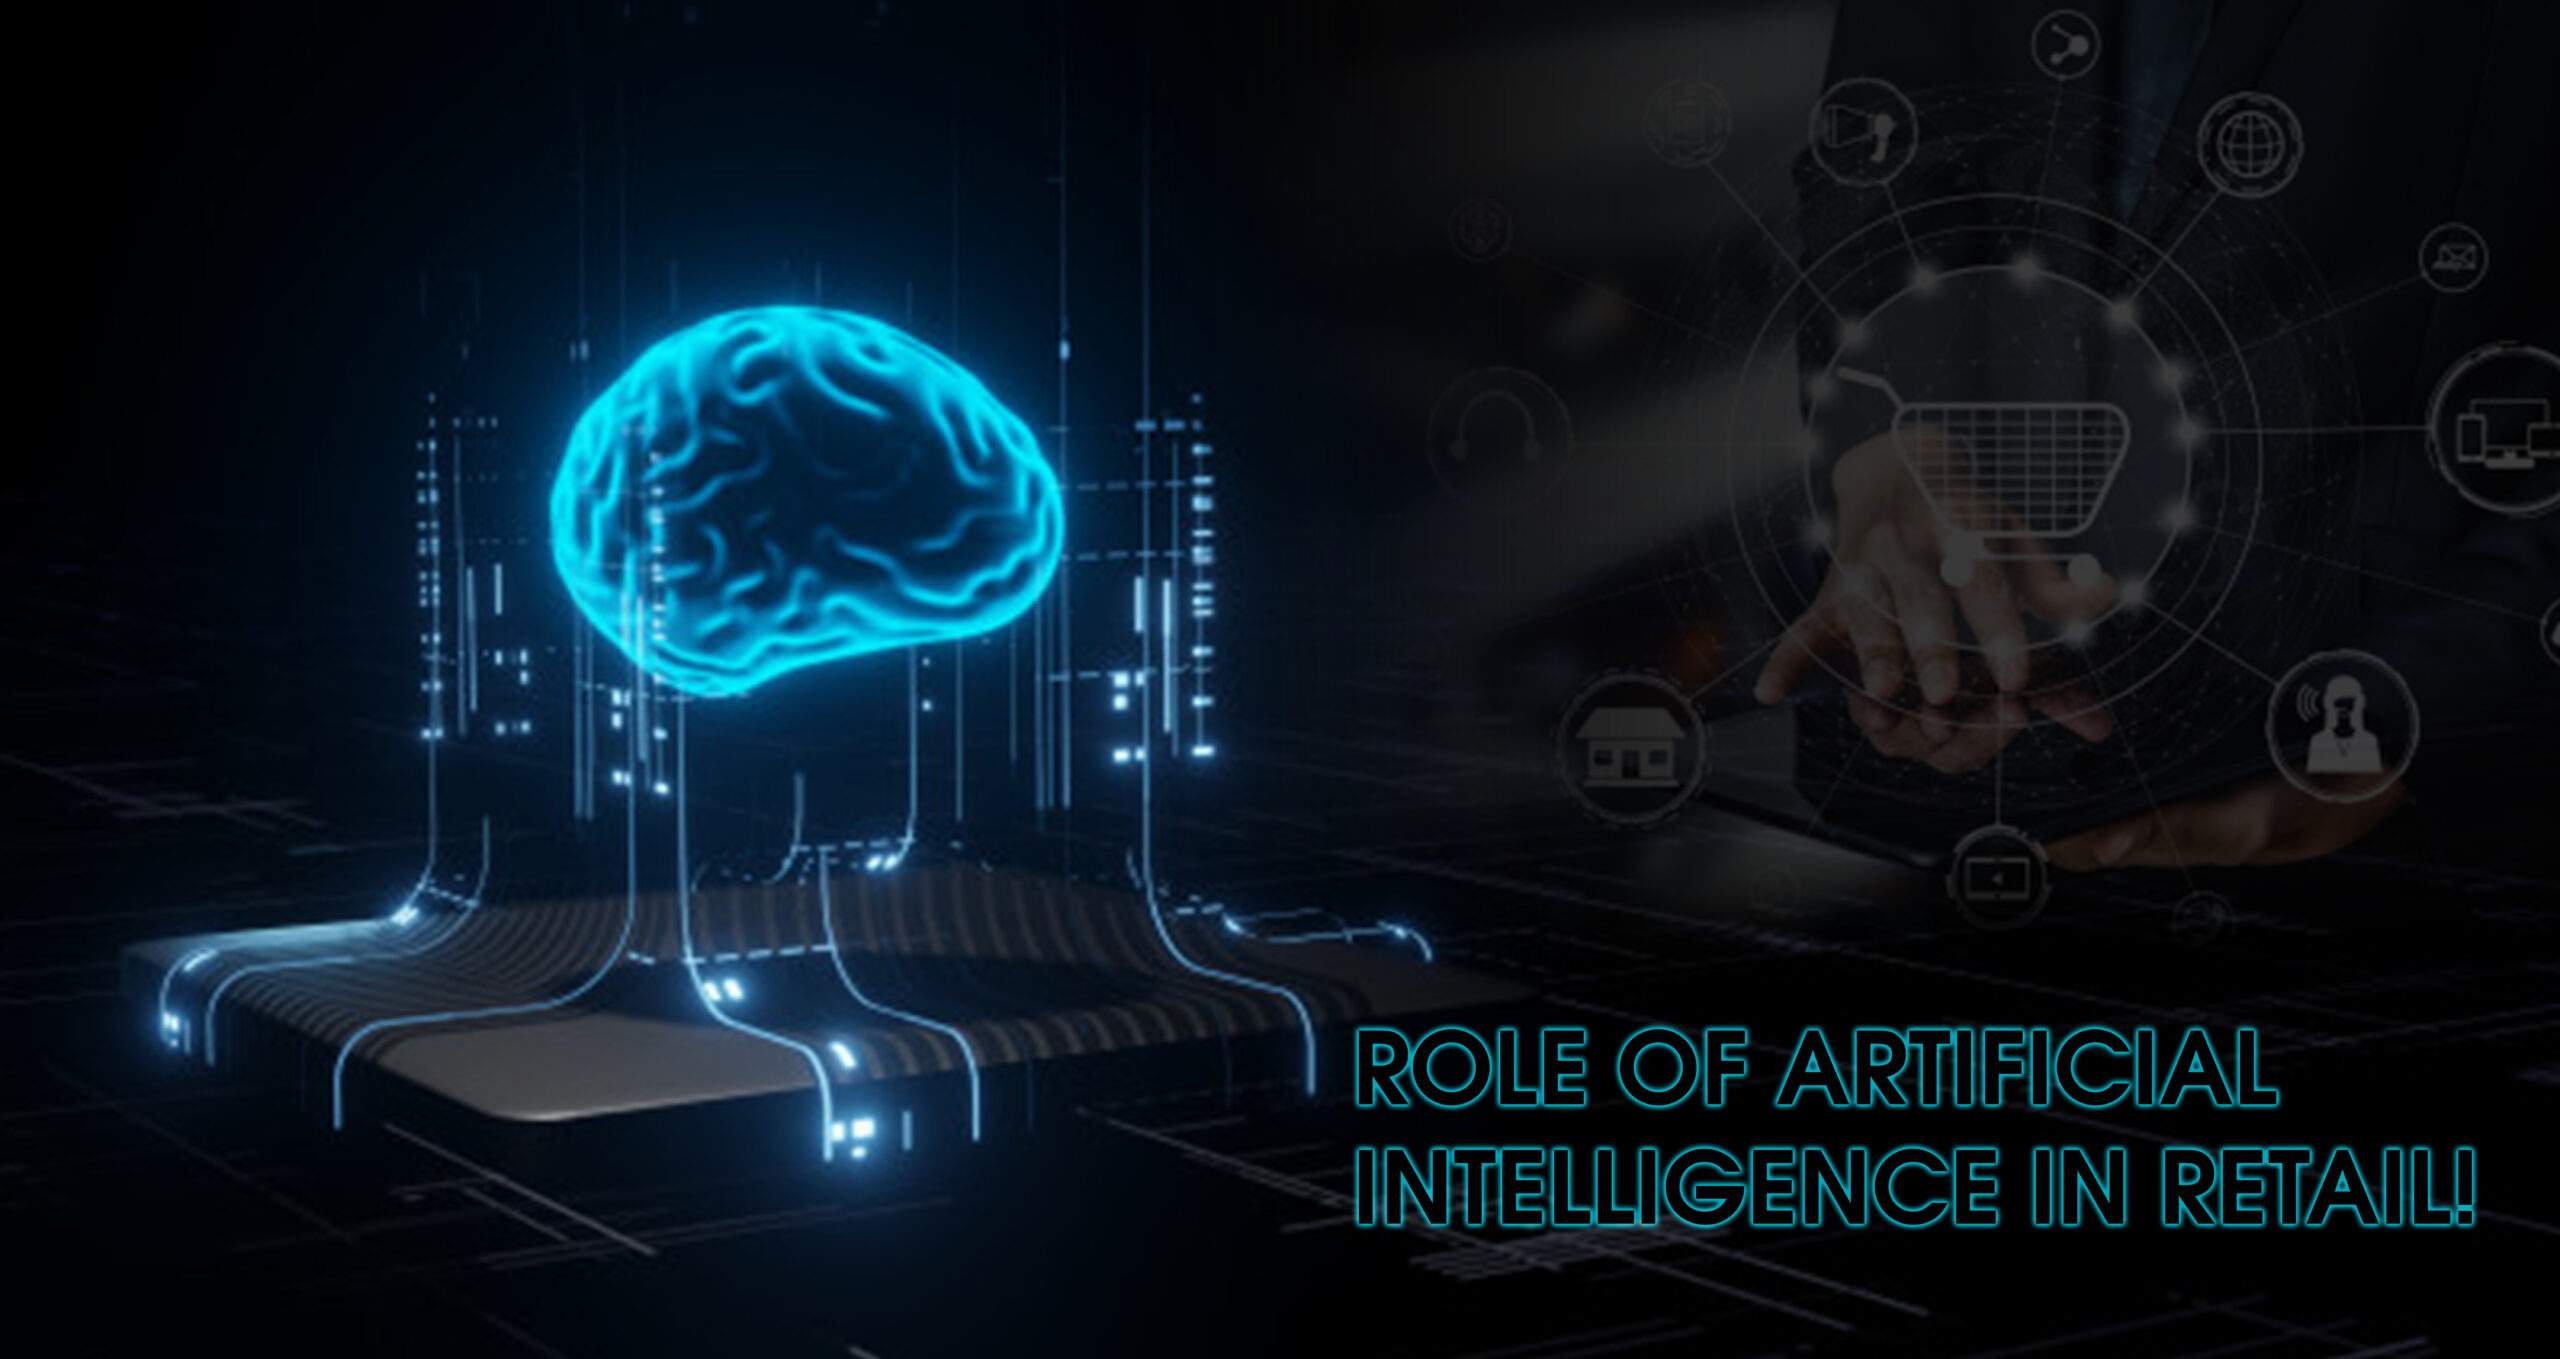 Role of artificial intelligence in retail